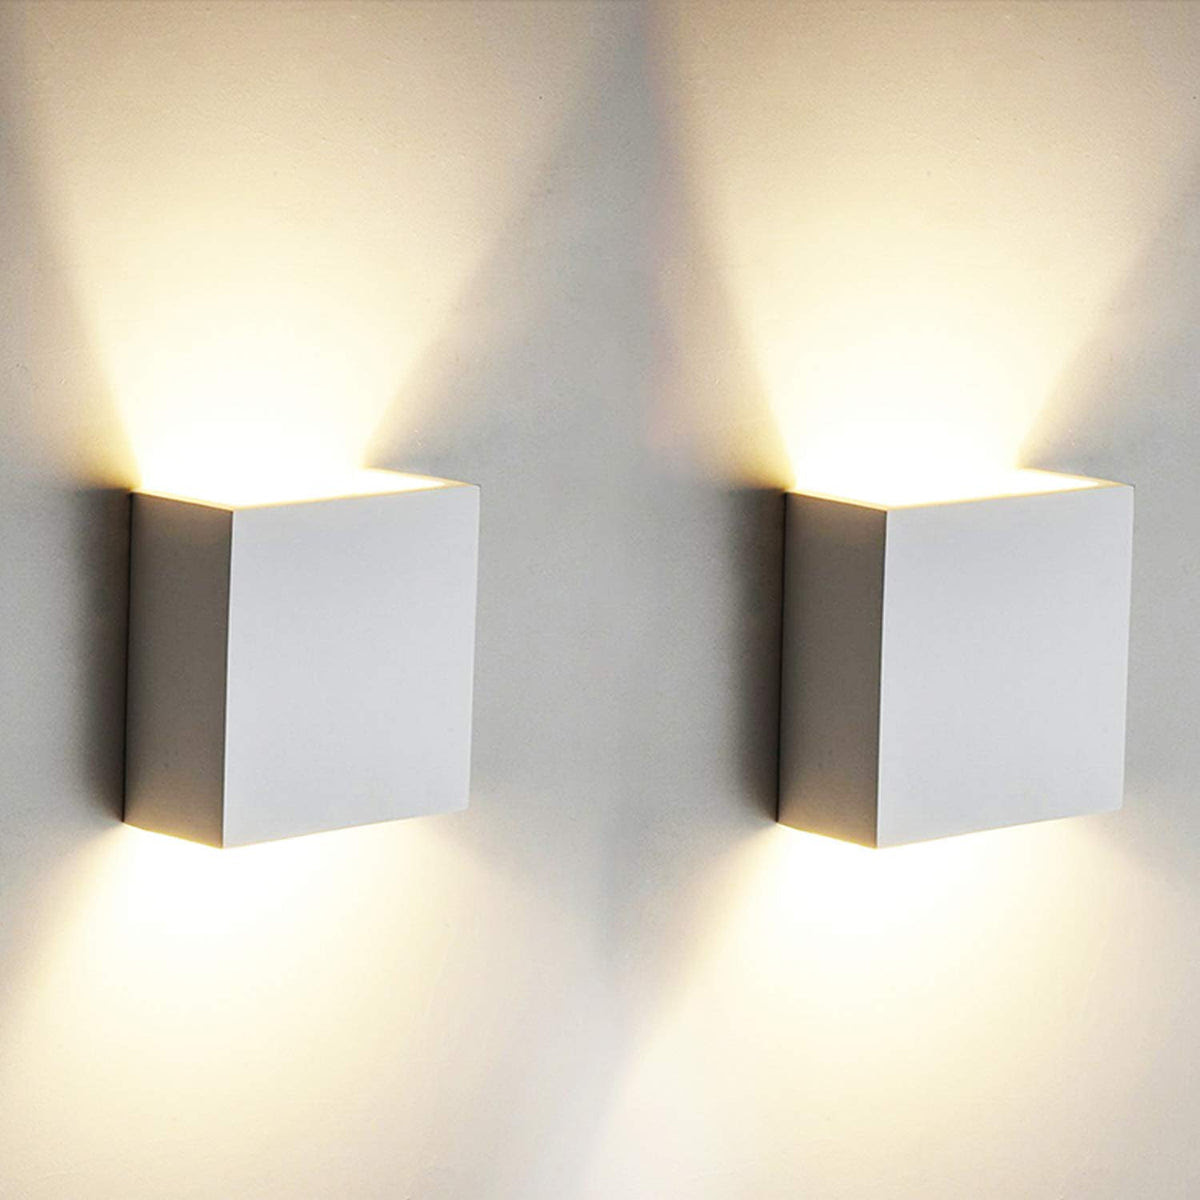 Aourow 7w Led Wall Light Up Down Indoor Wall Lamp Modern Aluminum Upli